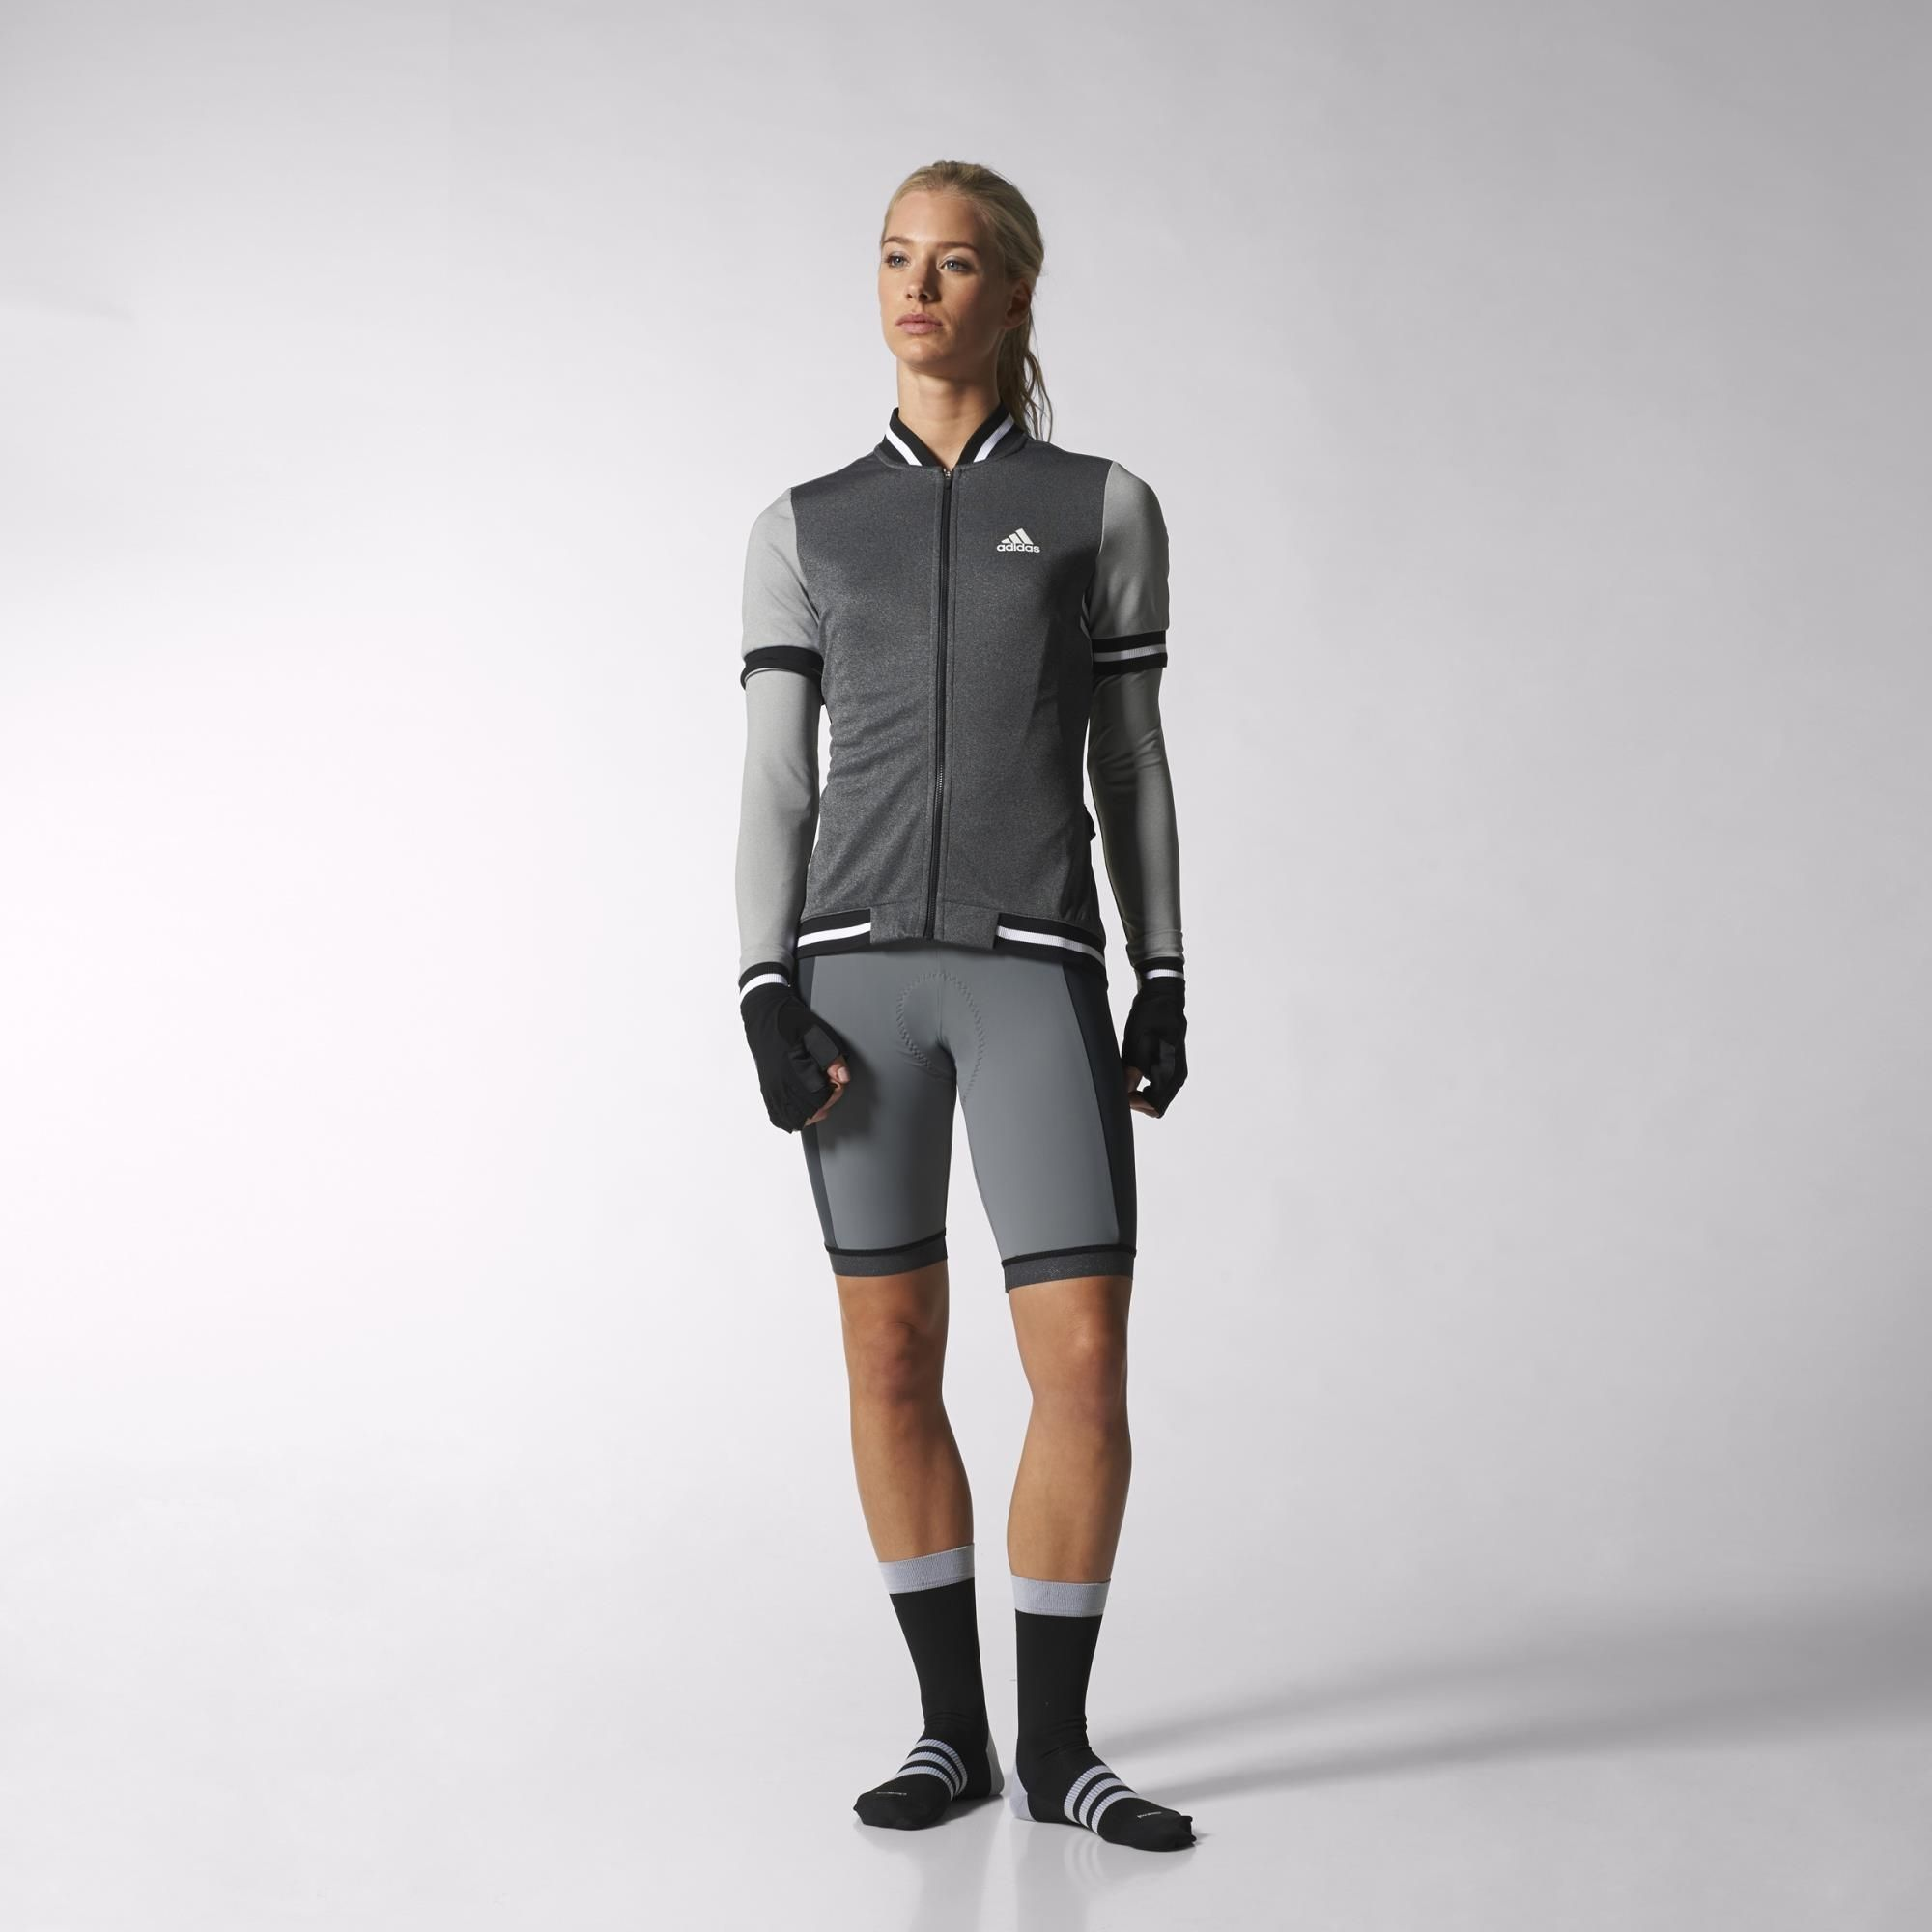 Cultural Hybrid Jersey   adidas Cycling   Cycling outfit, Cycling ...